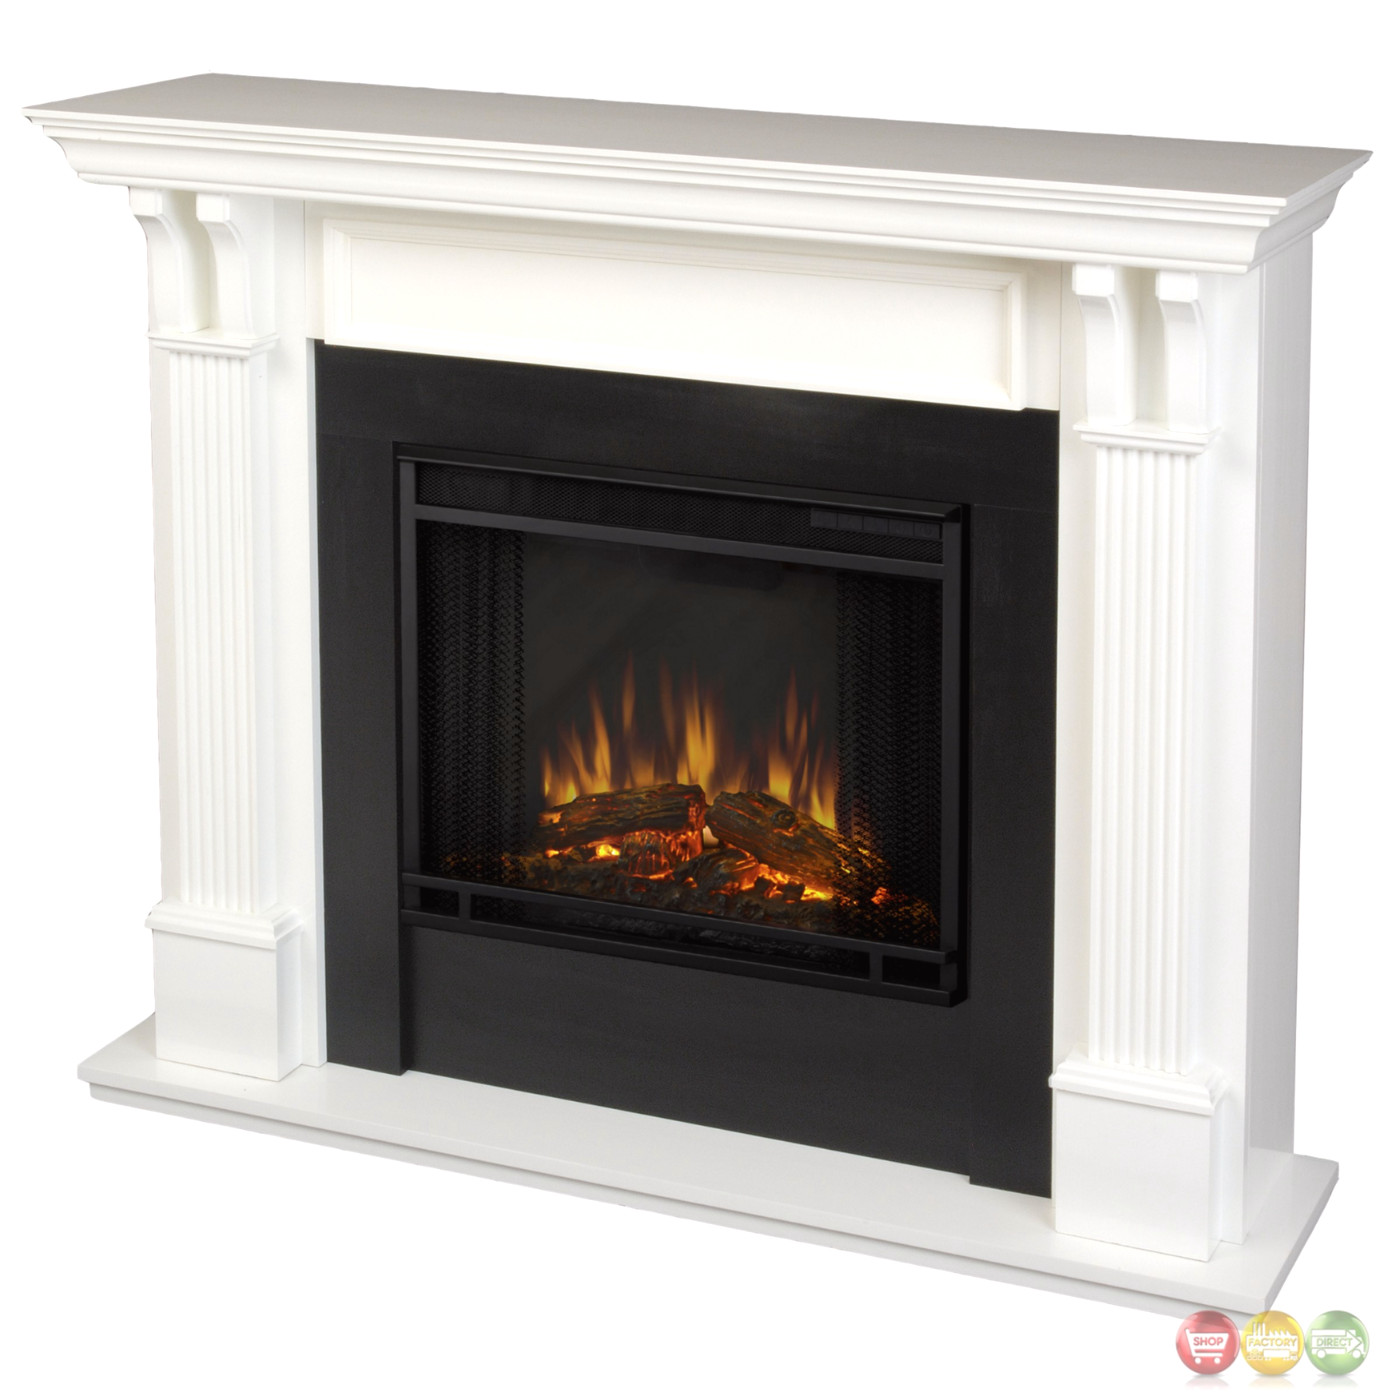 Ashley indoor electric led heater fireplace in white for Building an indoor fireplace